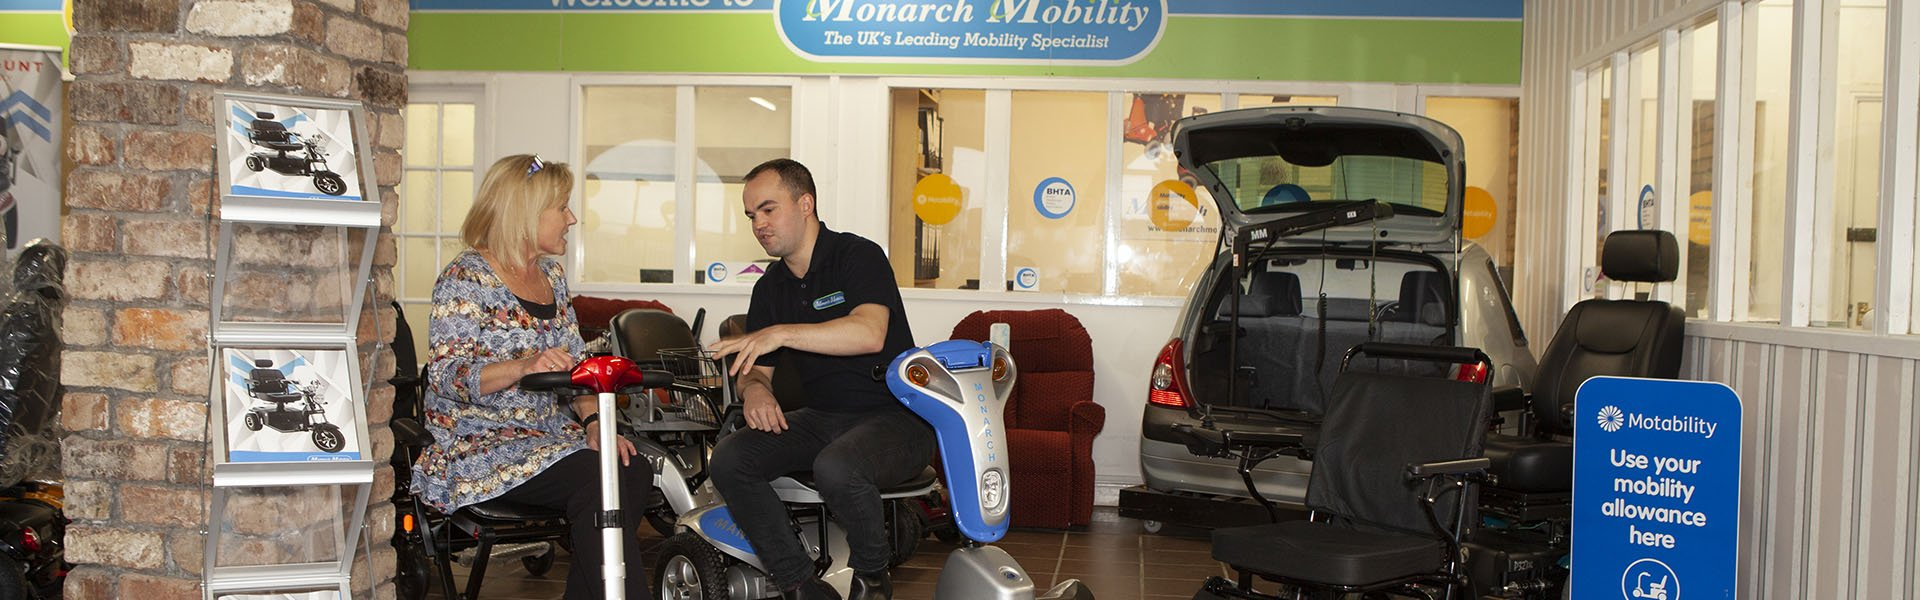 Mobility Experts | Monarch Mobility 0808 102 2218